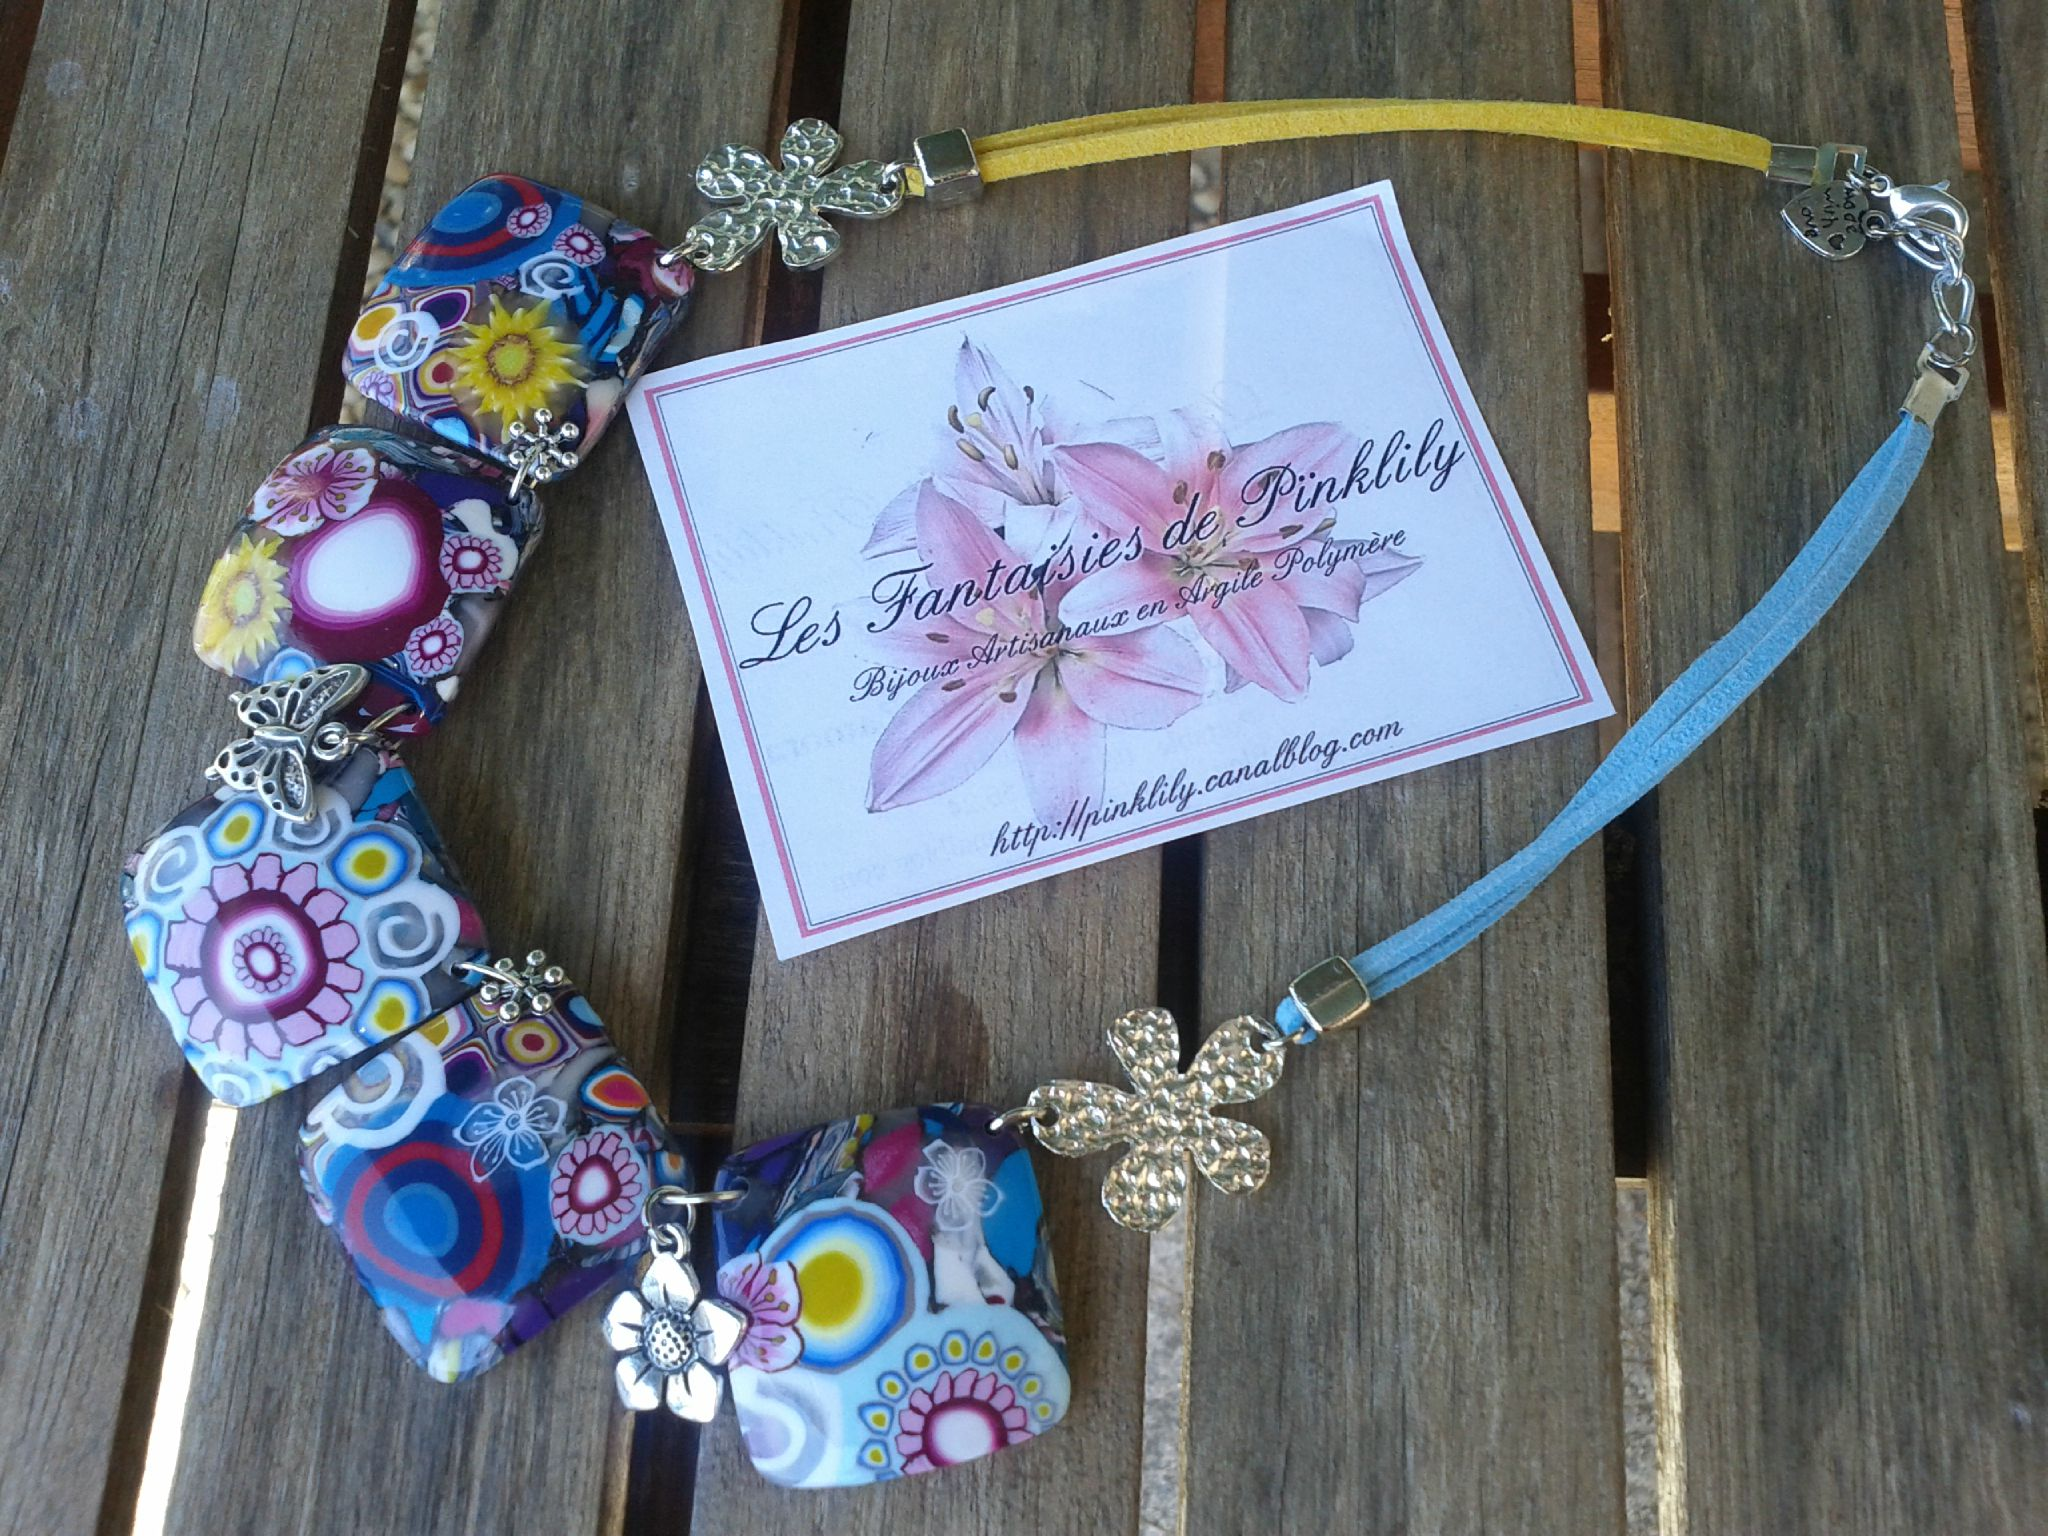 Sun and Flowers, collier 29€ VENDU